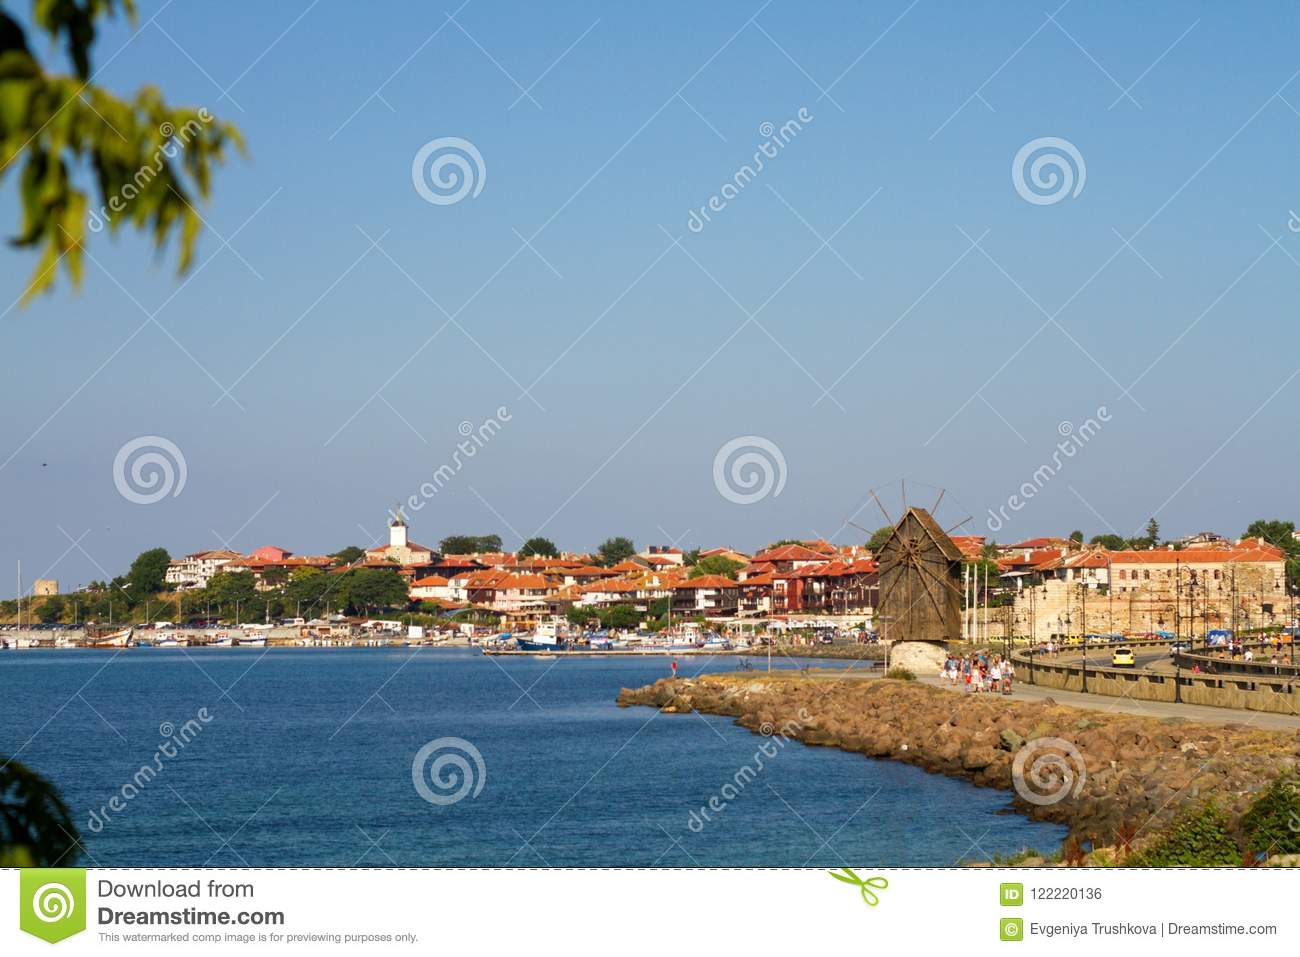 View of Old Town of Nesebar in Bulgaria